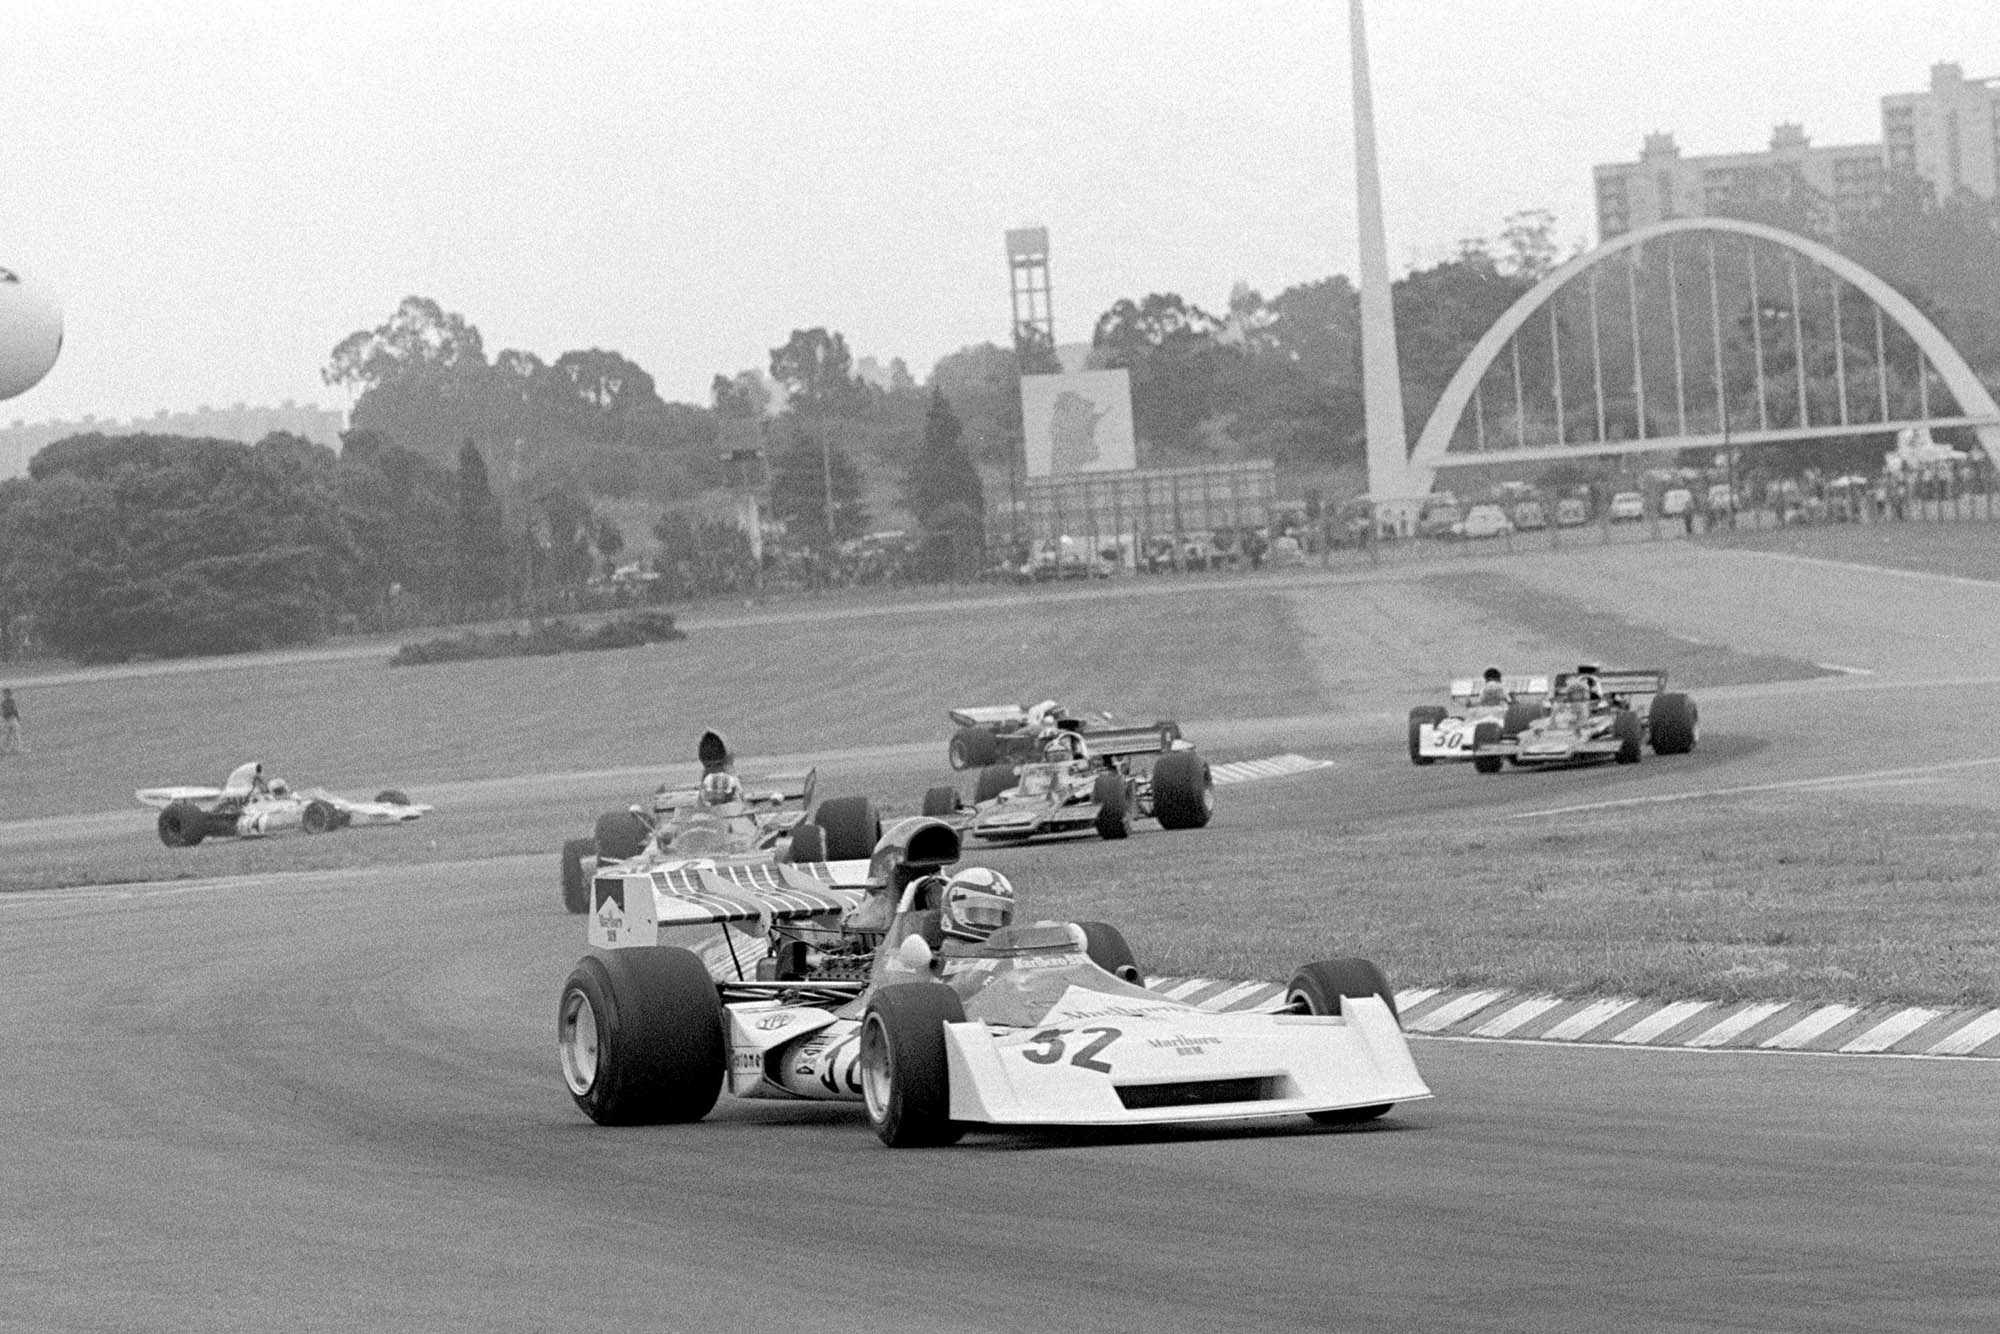 Clay Regazzoni(SUI) leads Francois Cevert(FRA), Emerson Fittipaldi(BRA) Ronnie Peterson(SWE) and Jean Pierre Beltoise(FRA)